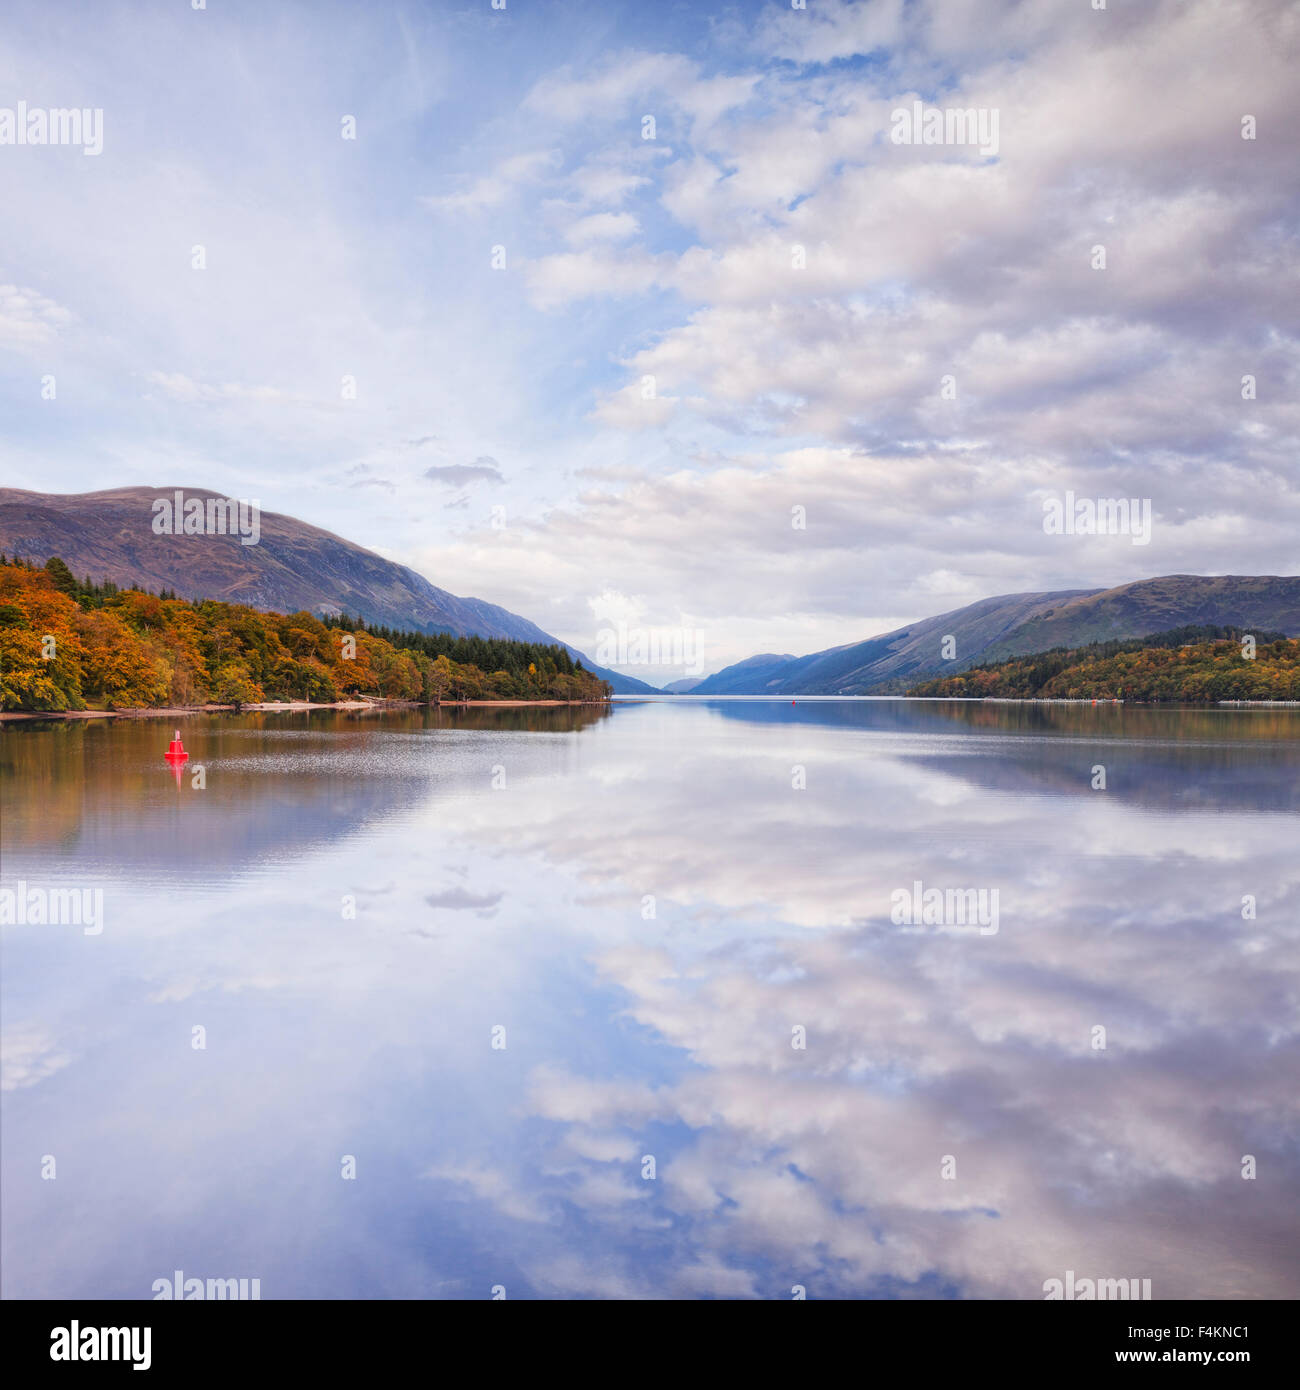 Autumn, Loch Lochy, Highland, Scotland. UK - Stock Image